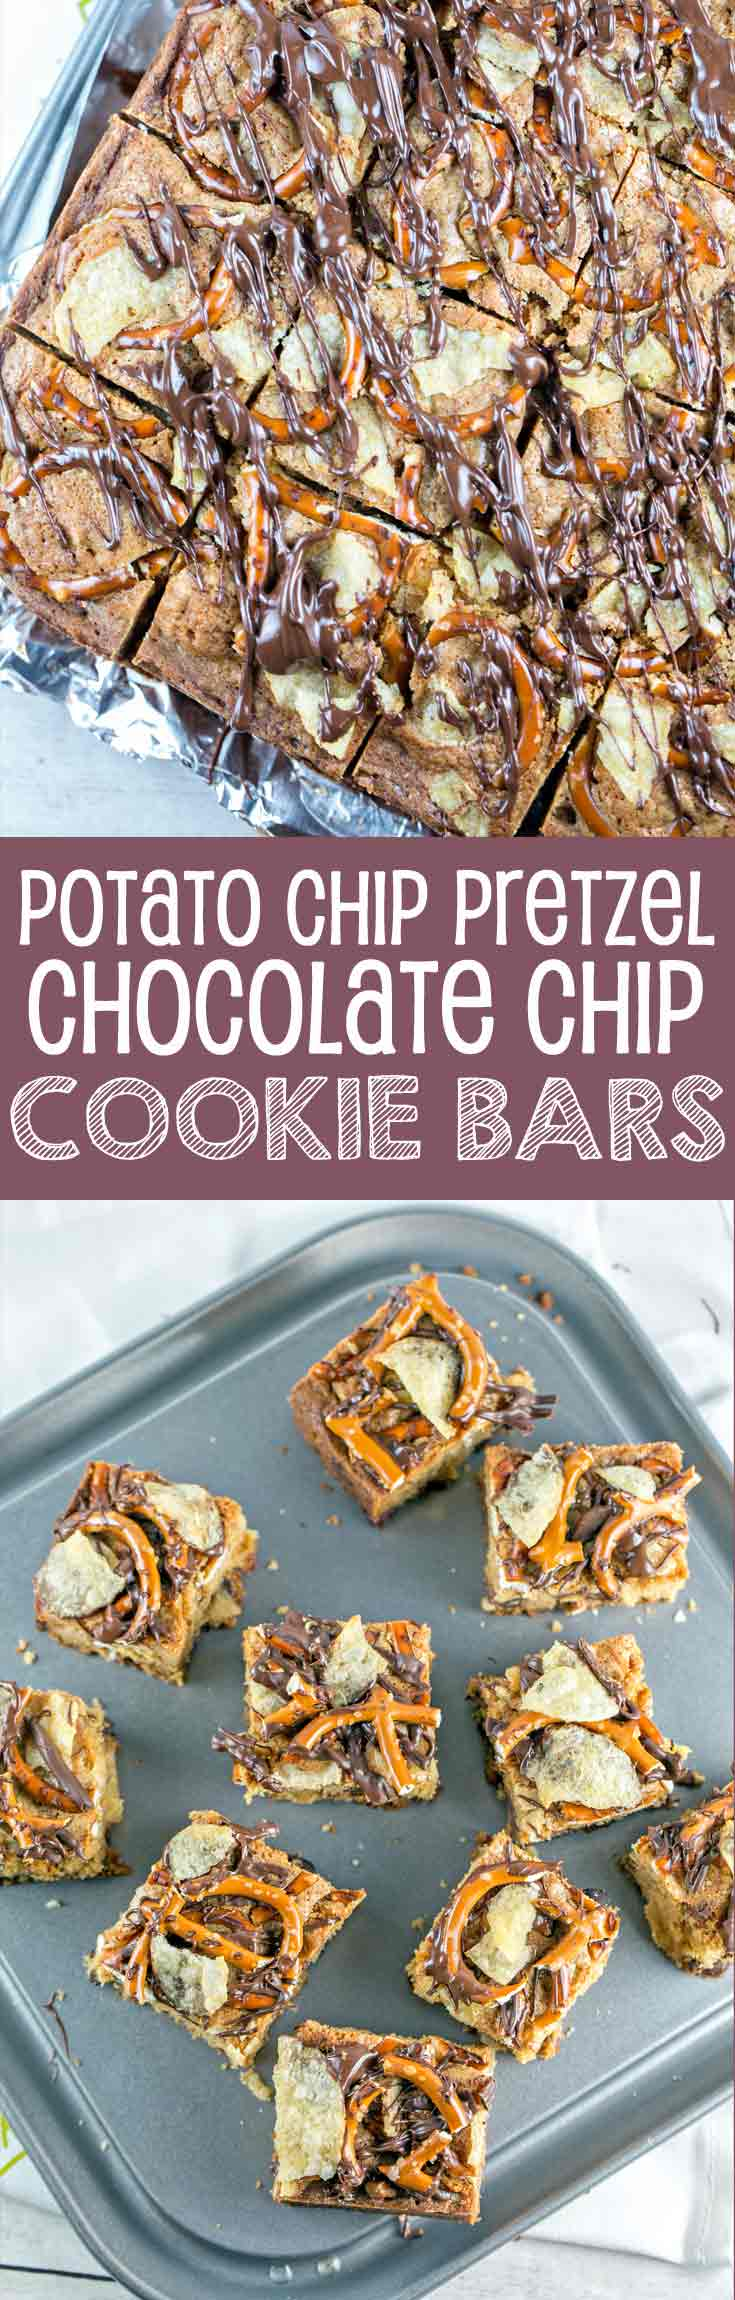 Potato Chip Pretzel Cookie Bars | Dessert | Party Food | Chocolate Chip Cookies | Bunsen Burner Bakery